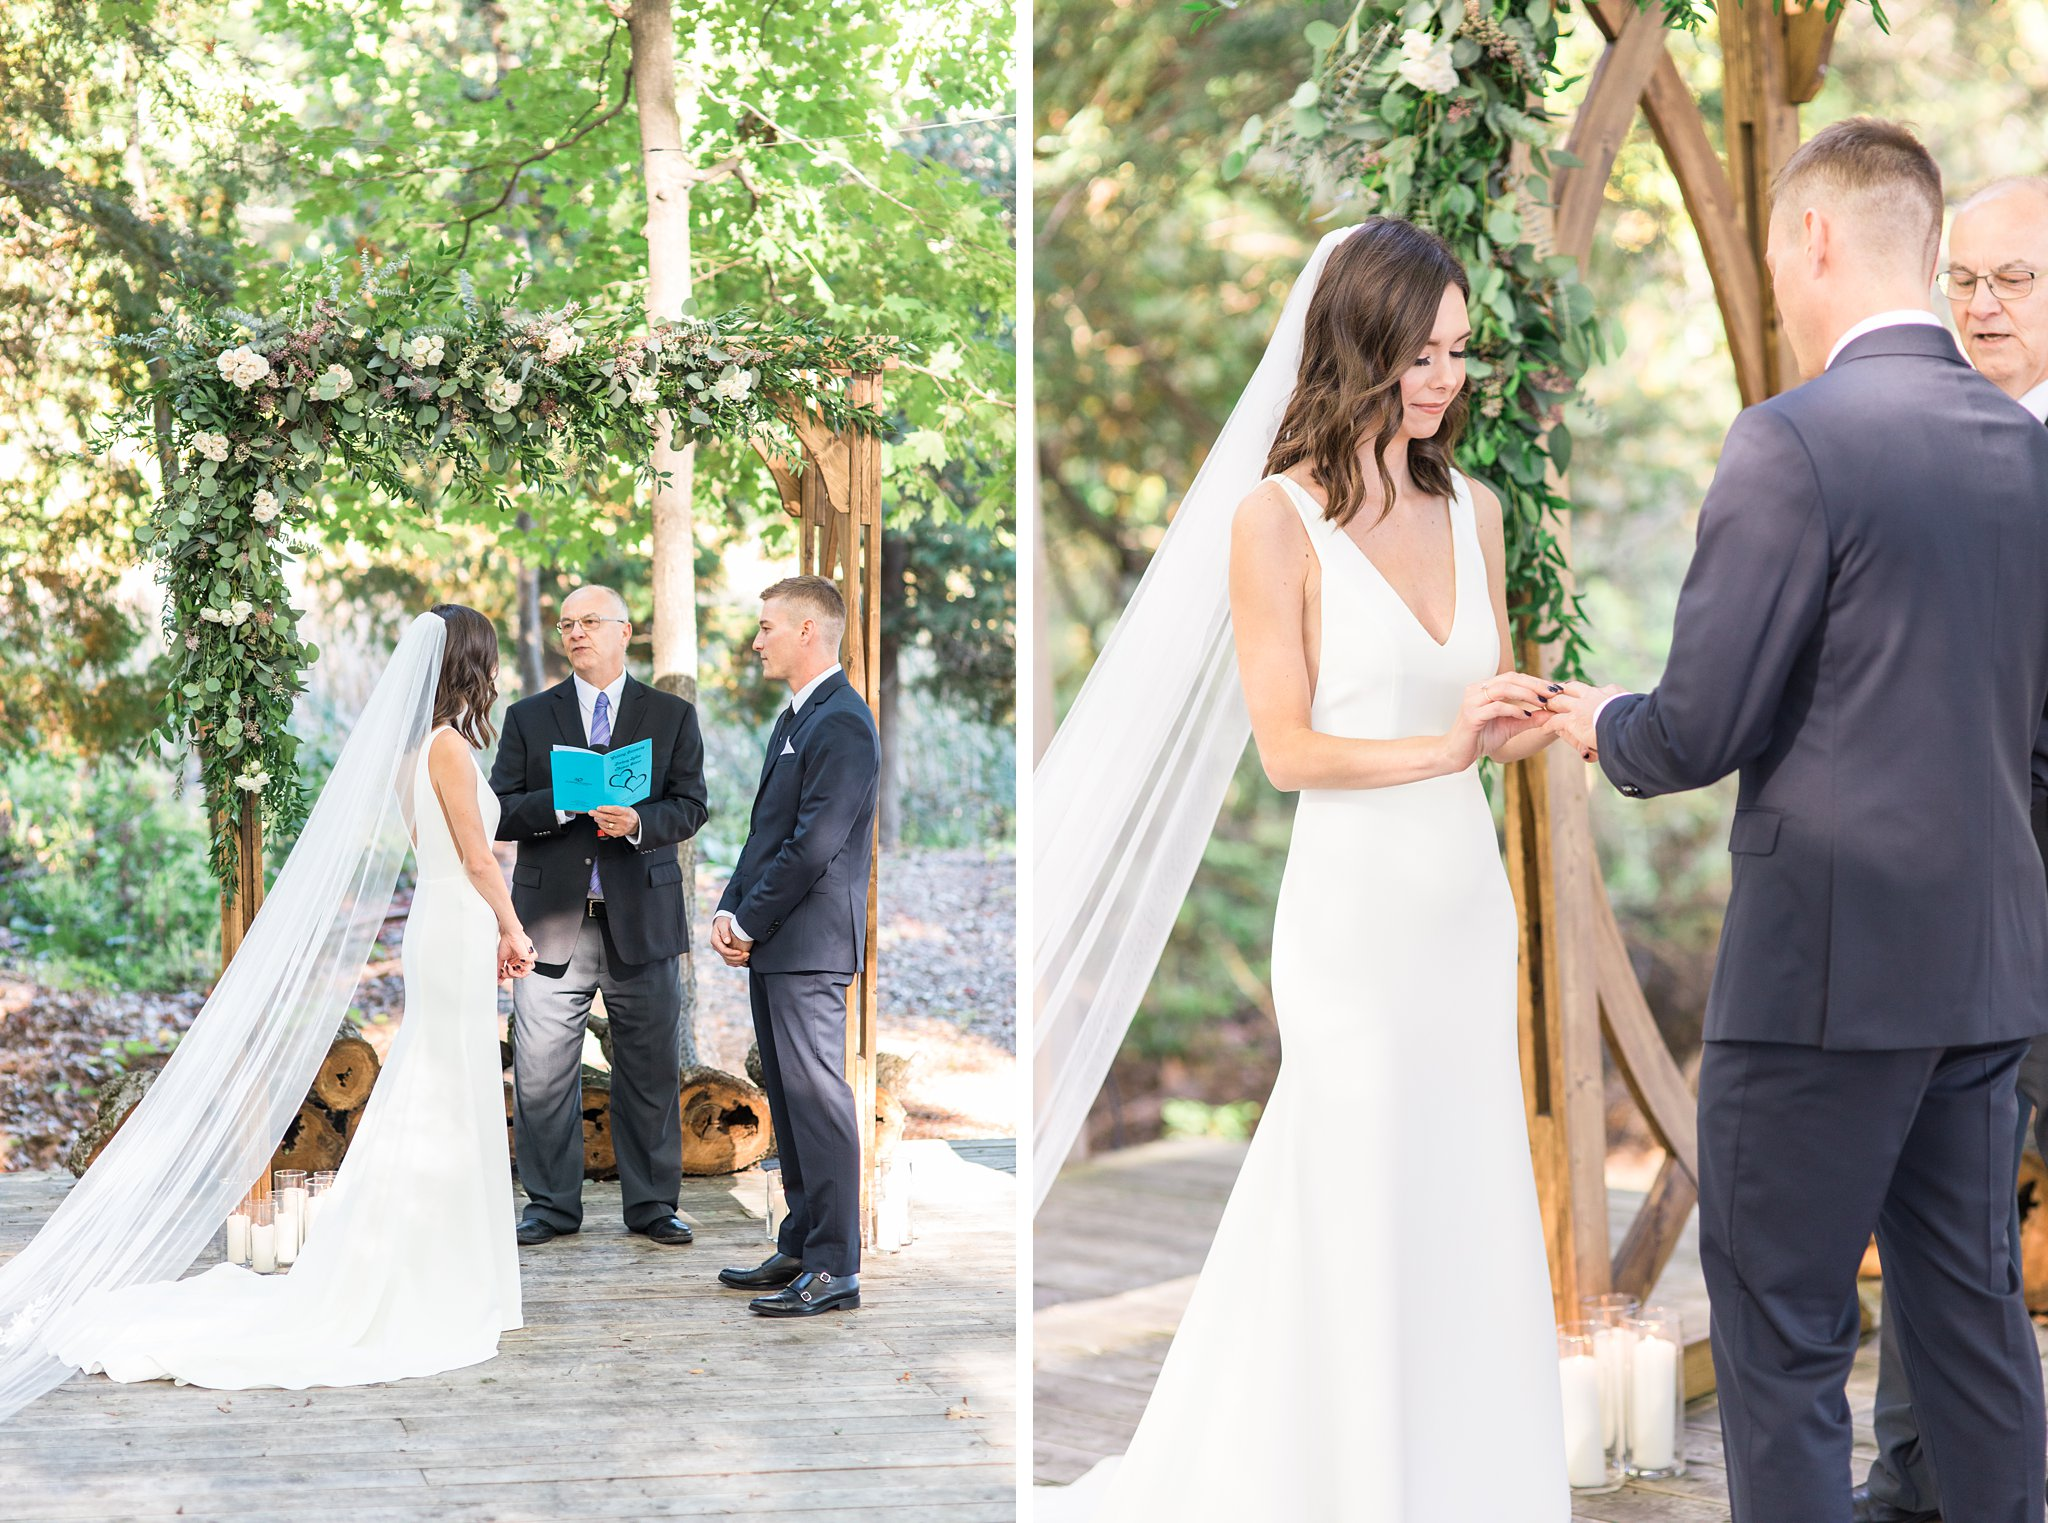 Bride slides ring on groom's finger in outdoor forest ceremony, Opinicon Wedding Photos by Amy Pinder Photography